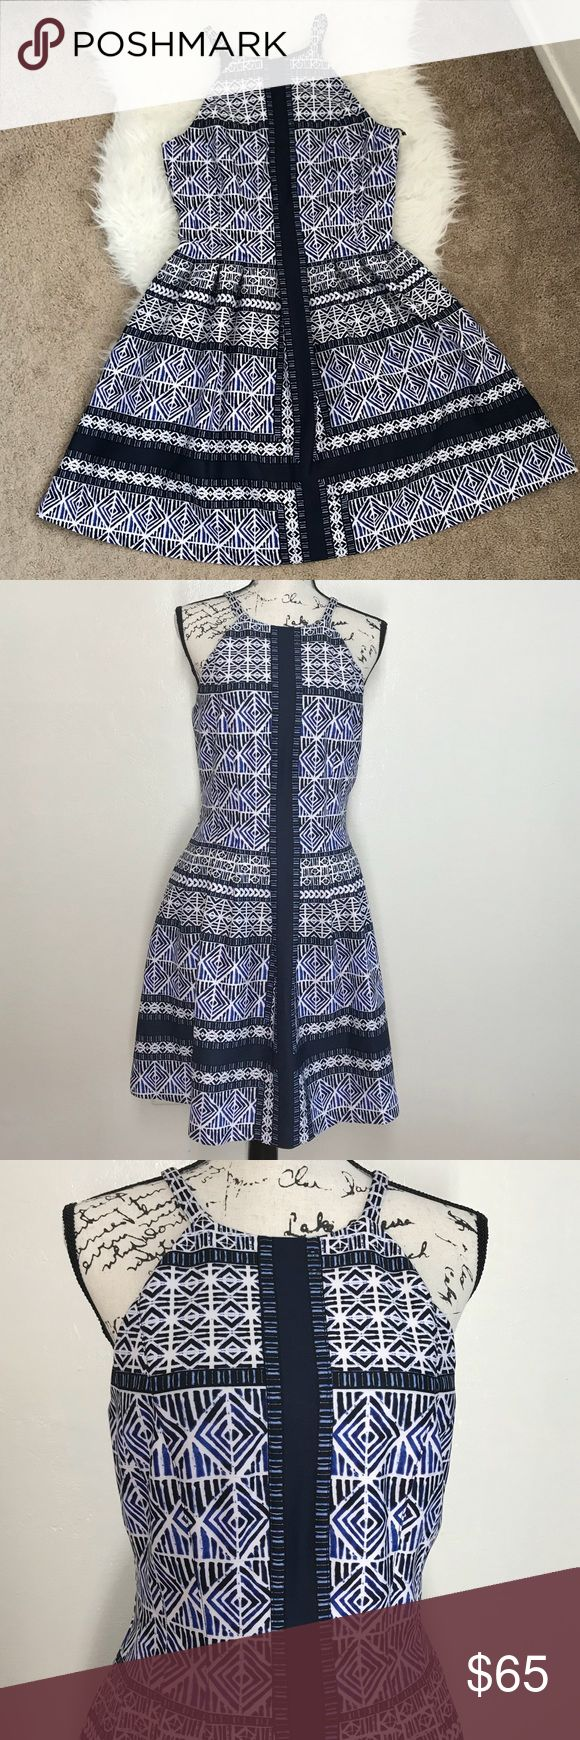 """🆕 Vince Camuto Scuba Blue Halter Fit Dress * Vince Camuto Scuba Halter Fit Dress * Blue/White/Black  * Size 10 * Material: Shell 95% polyester, 5% spandex. Lining: 100% polyester * Features: fleats, zipper closure on back, above/ knee length.  * App Measurements: 38"""" length, 17"""" pit to pit, 15"""" waist area. * New with tag! Beautiful dress & nice quality fabric! * added a belt for possible styling option. Not included in the sale! 🤗 Vince Camuto Dresses"""